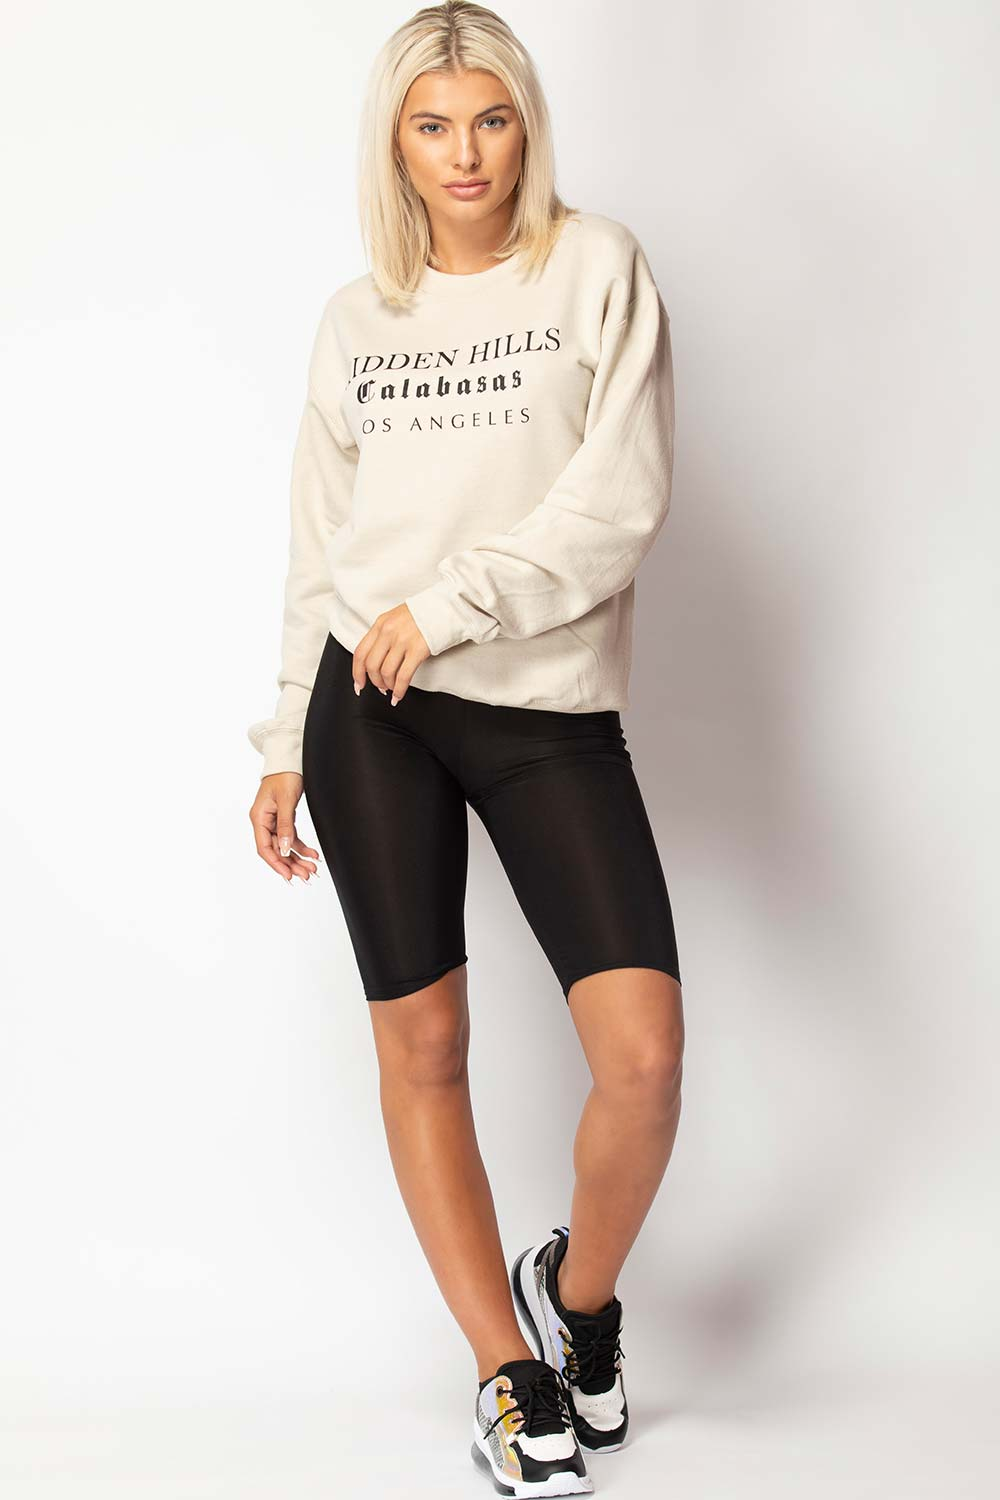 los angeles slogan sweatshirt sand